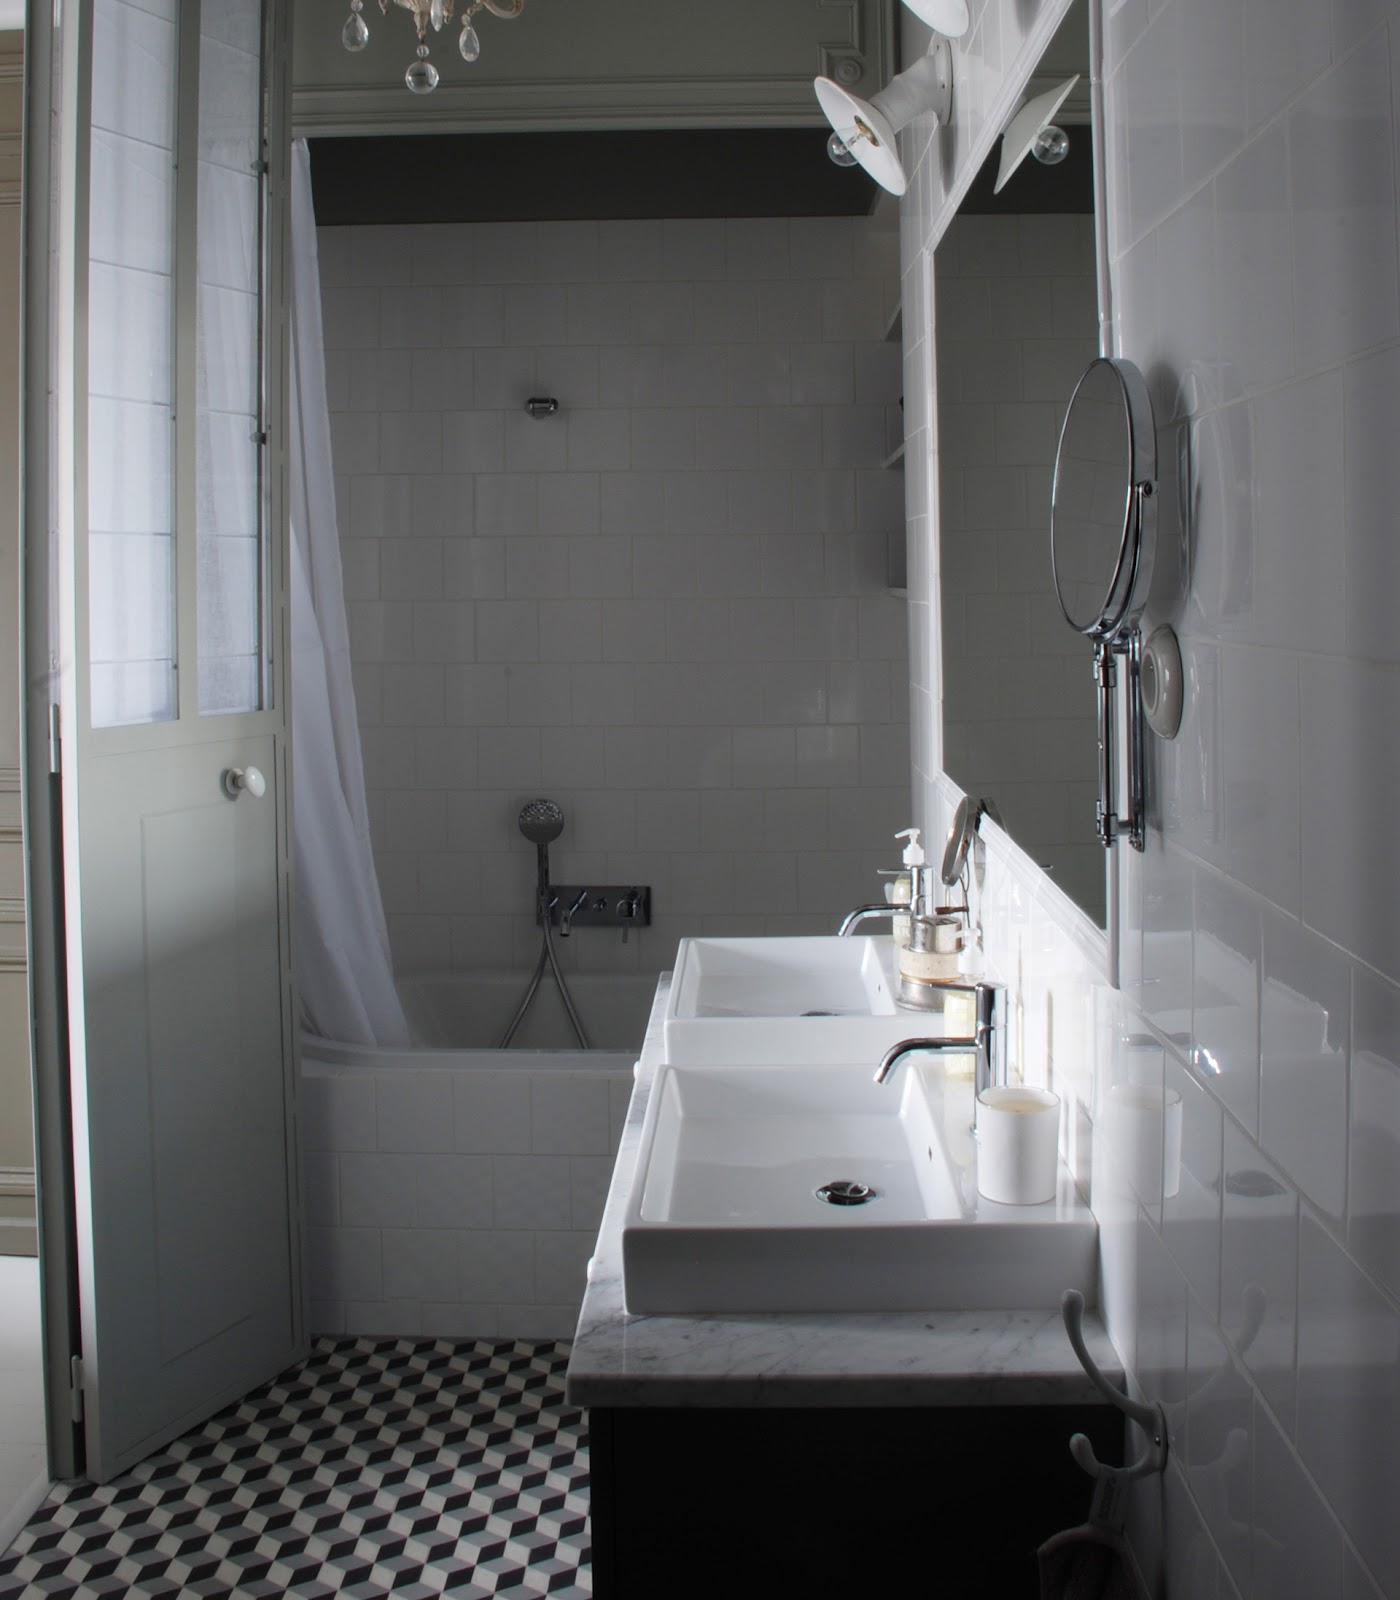 Marianne evennou mars 2012 for Carreaux salle bain